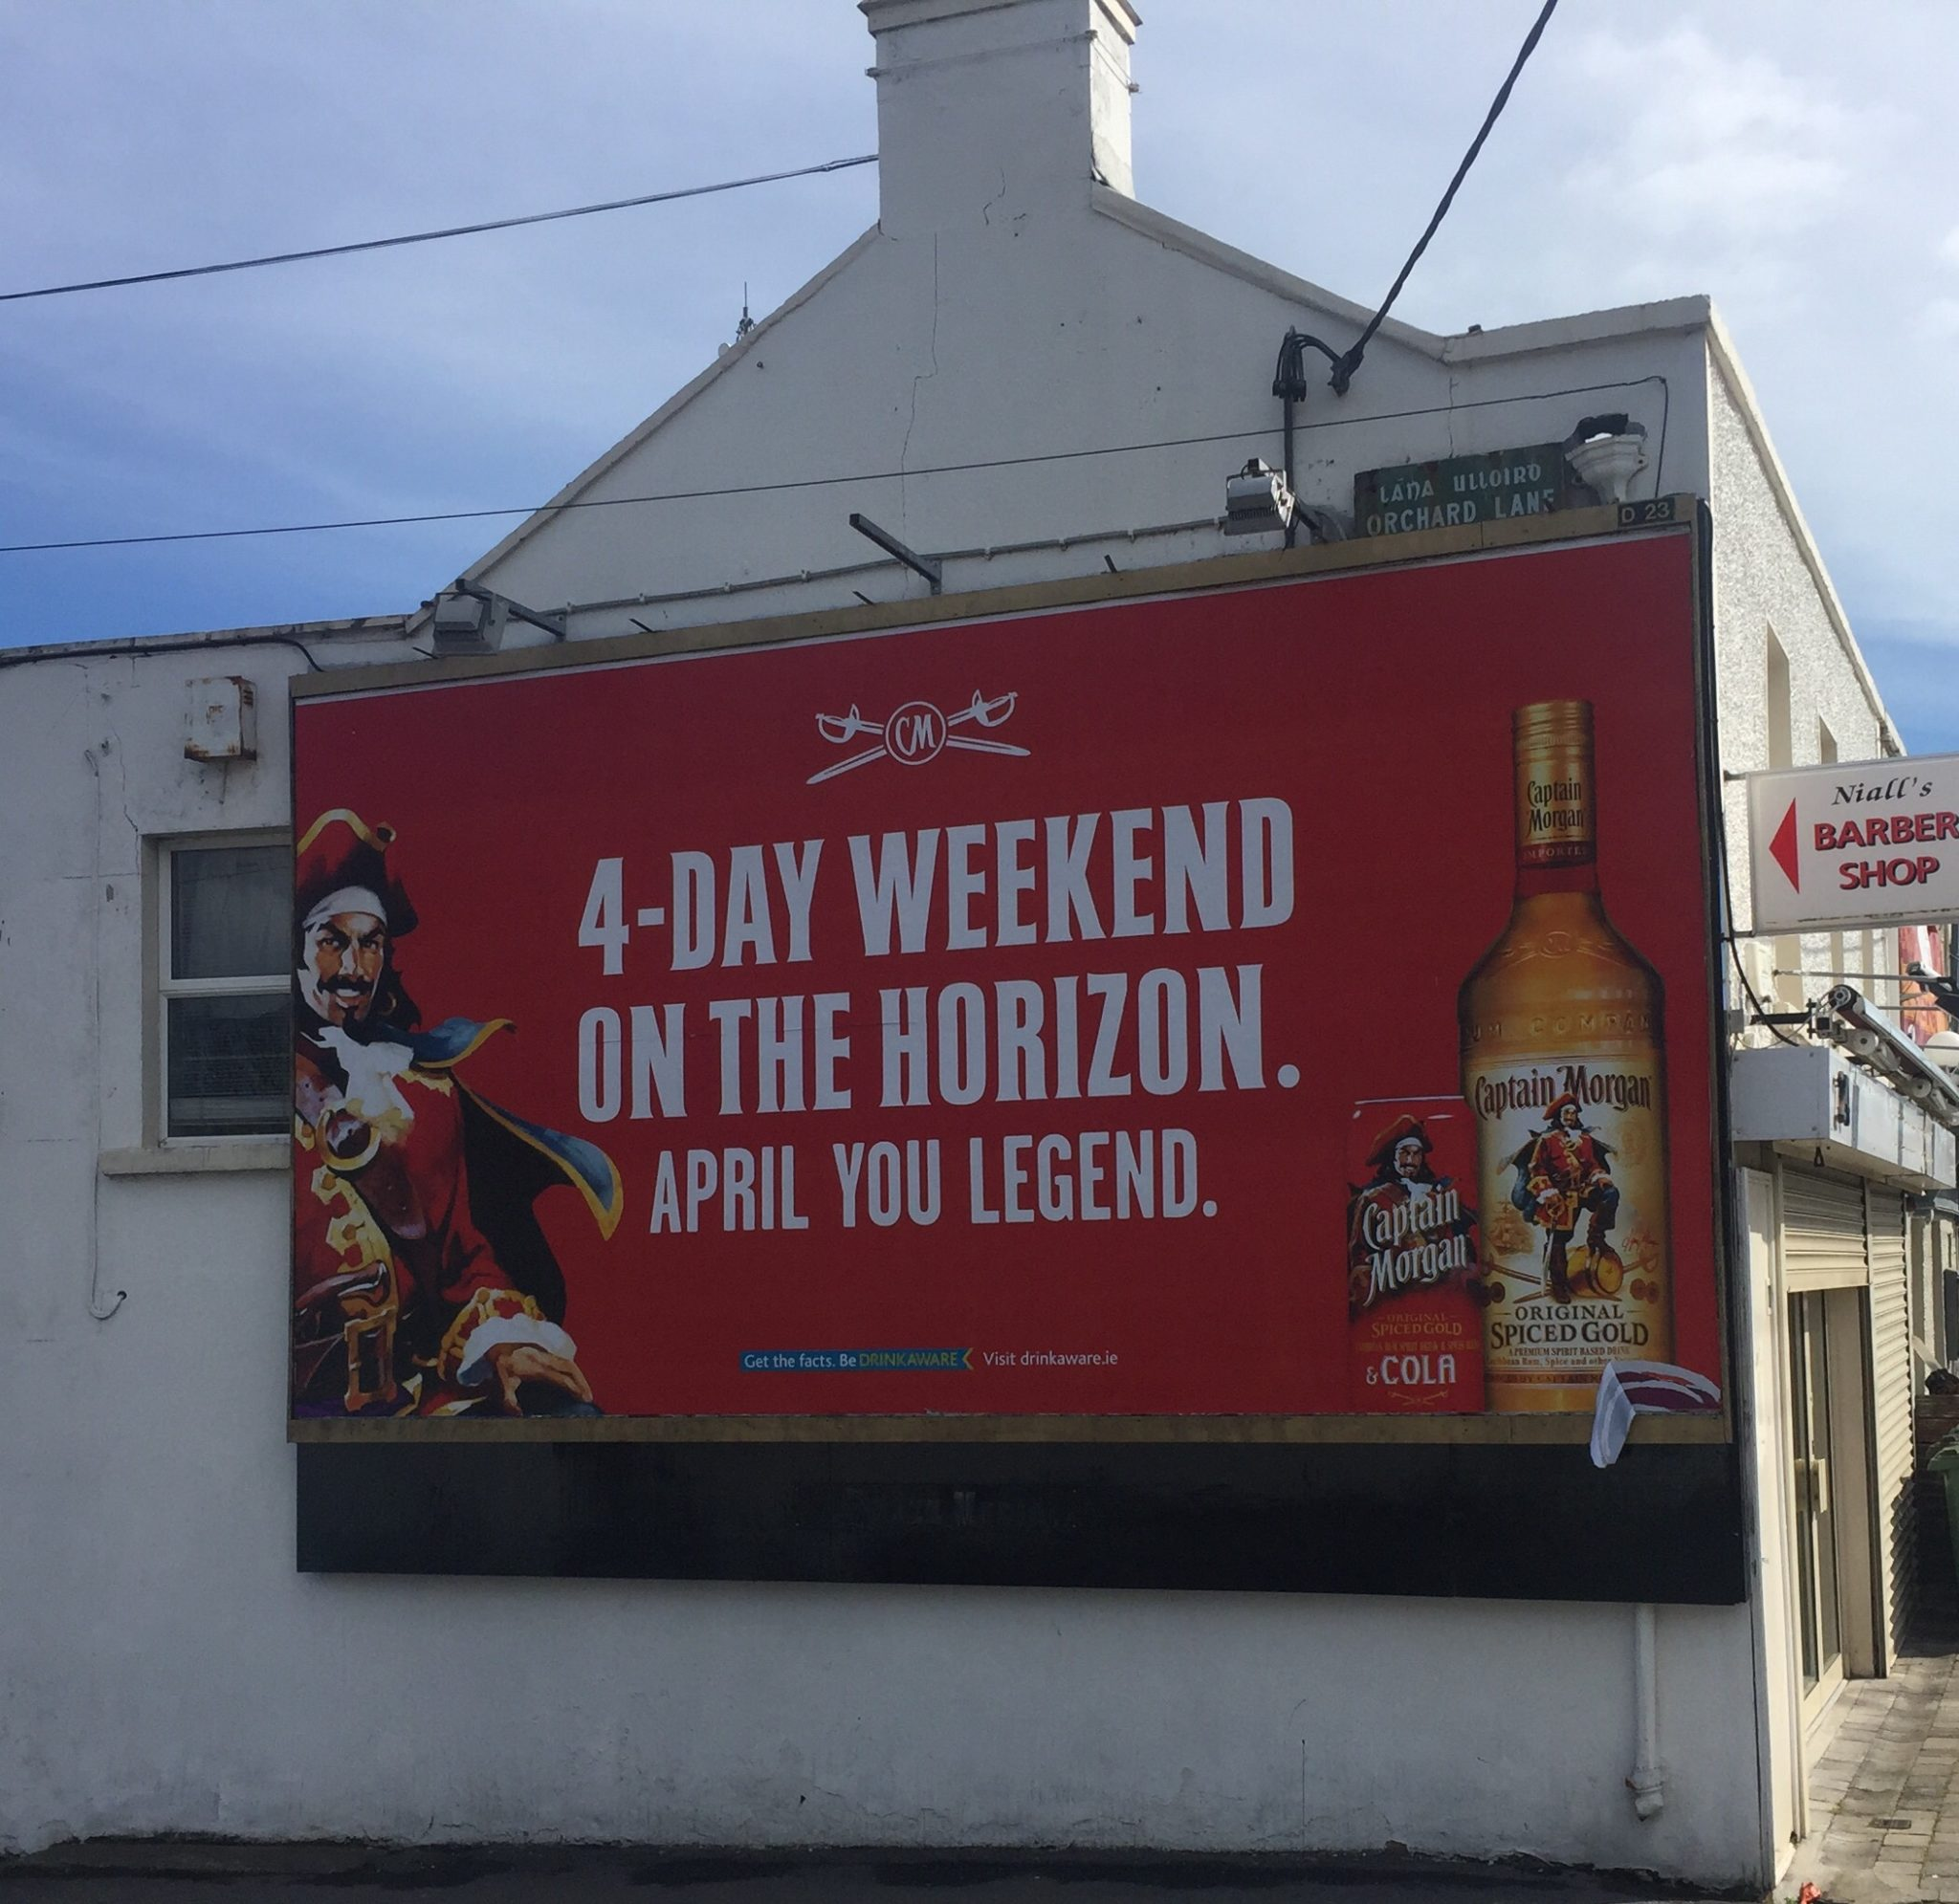 Captain Morgan – 4-Day weekend on the horizon